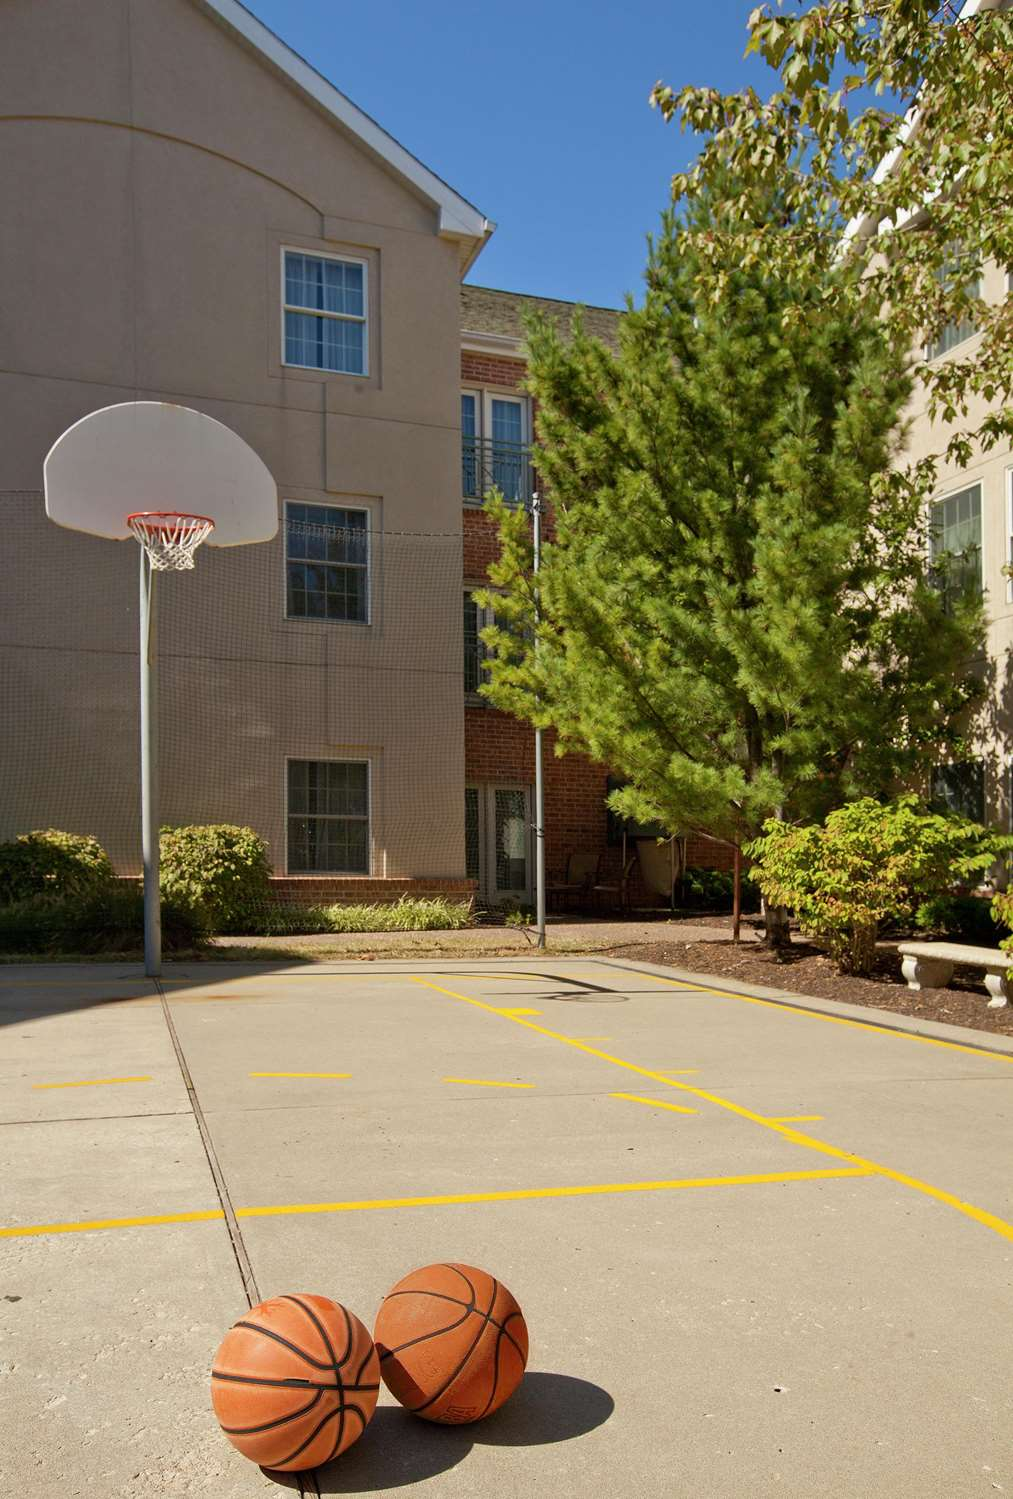 Recreation - Homewood Suites by Hilton Airport Kansas City